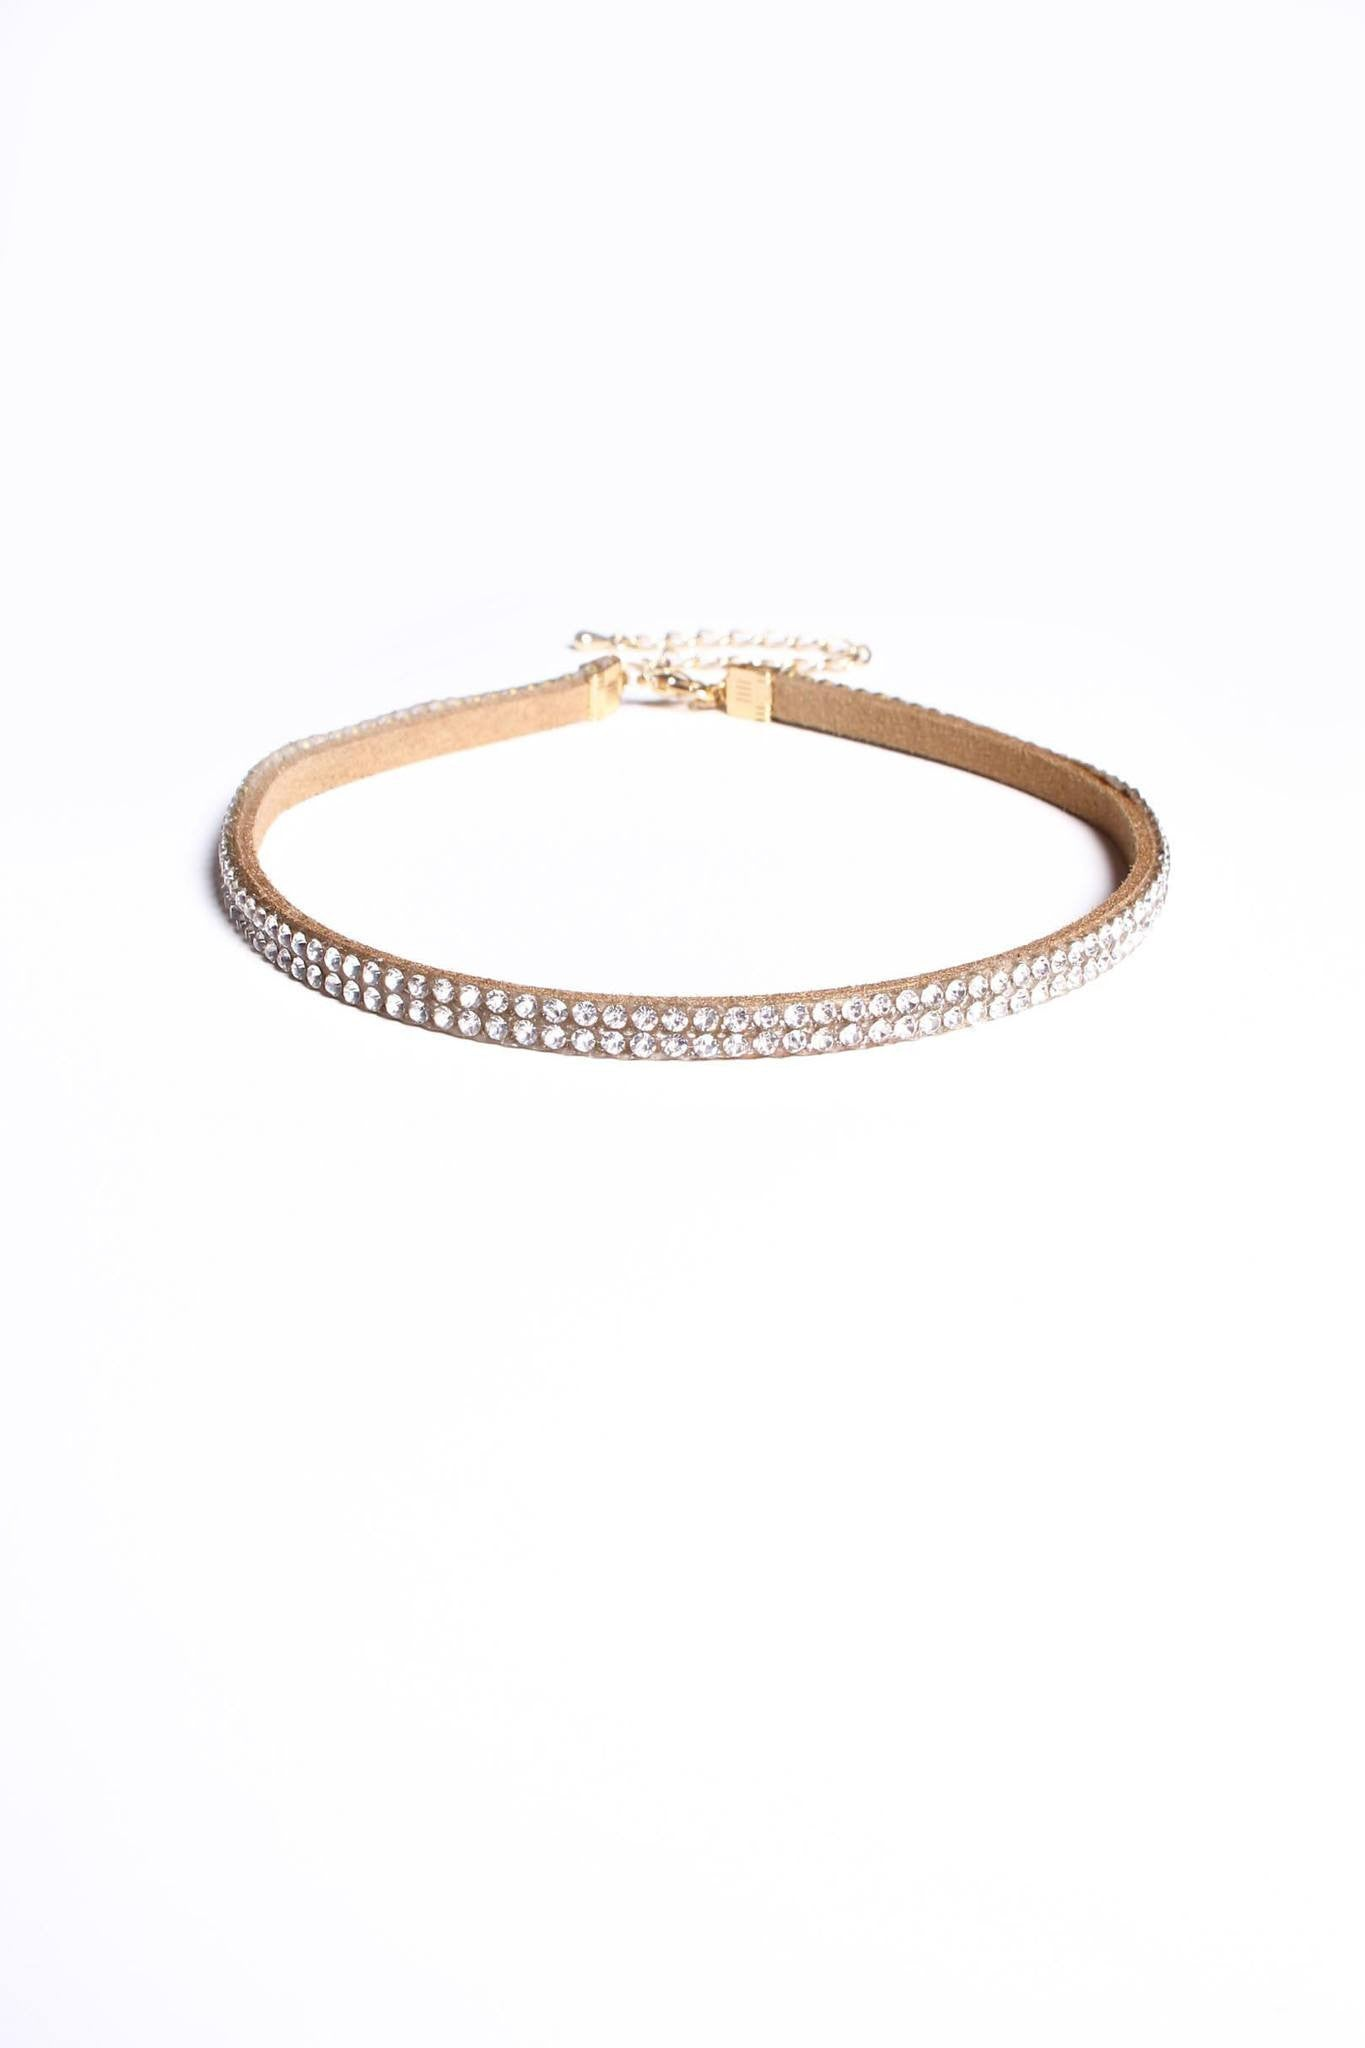 Lovers Lane Rhinestone Choker - Taupe